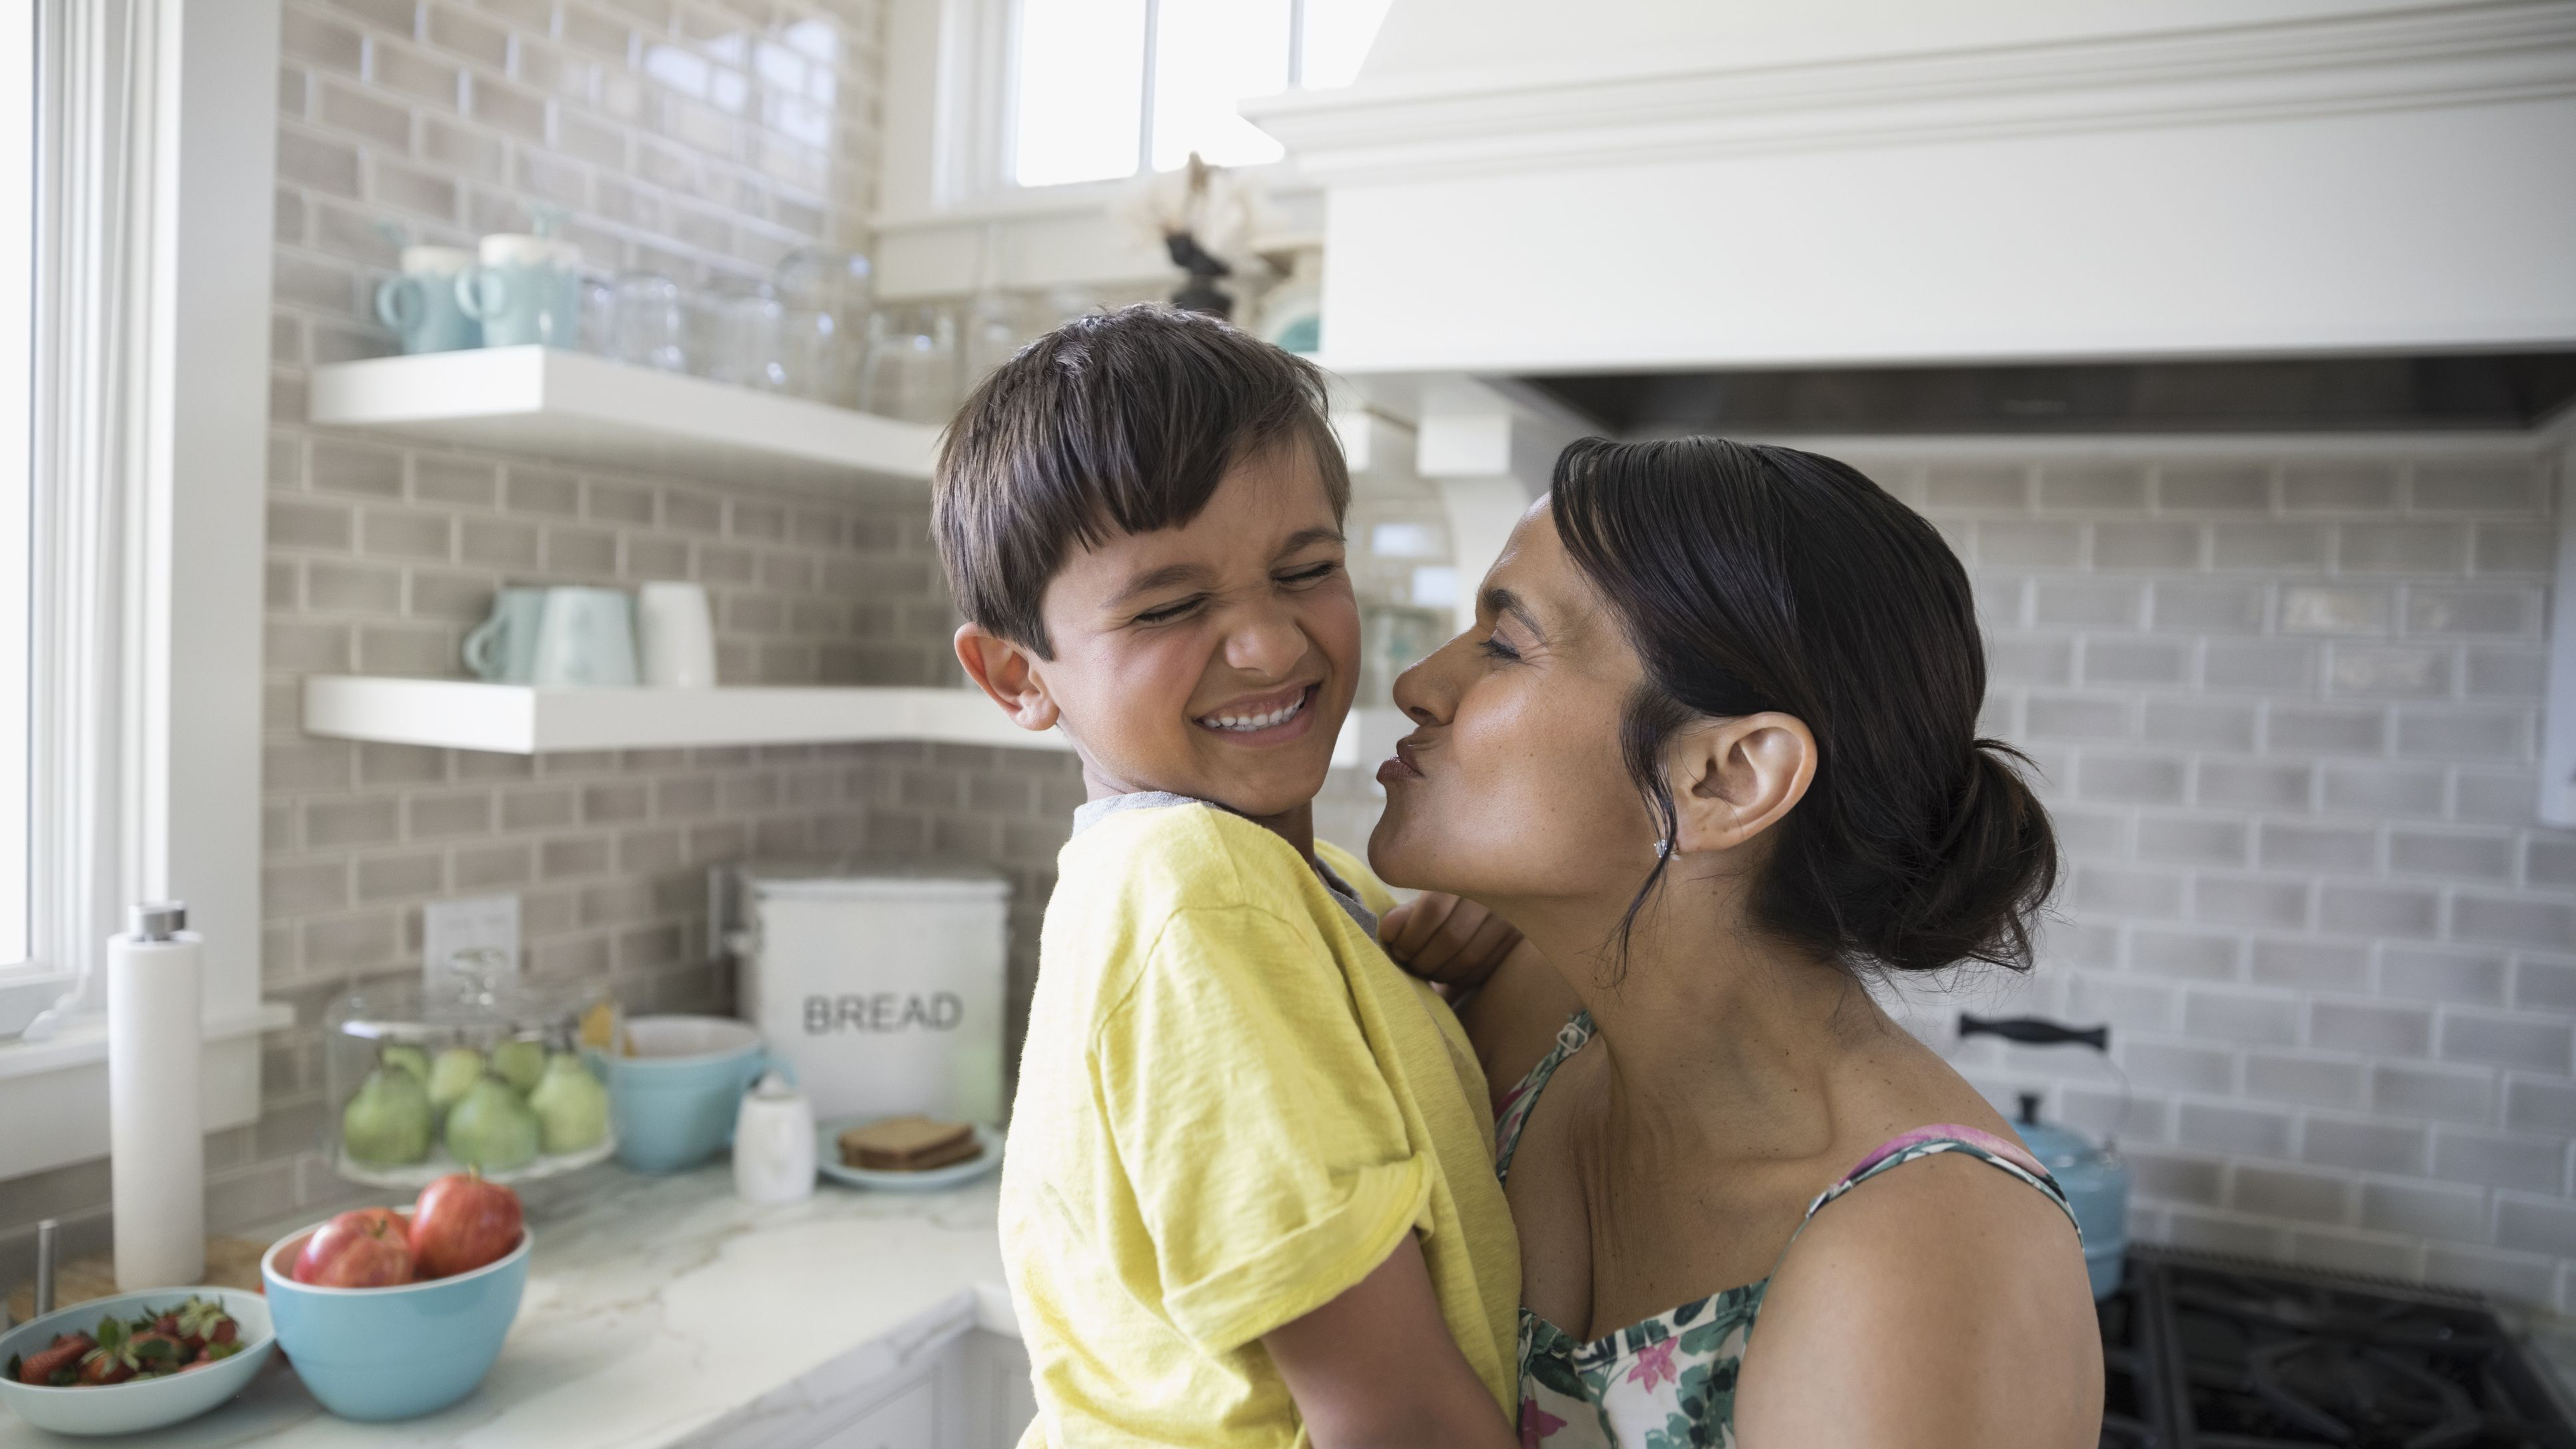 Where to Find Assistance for Single Moms